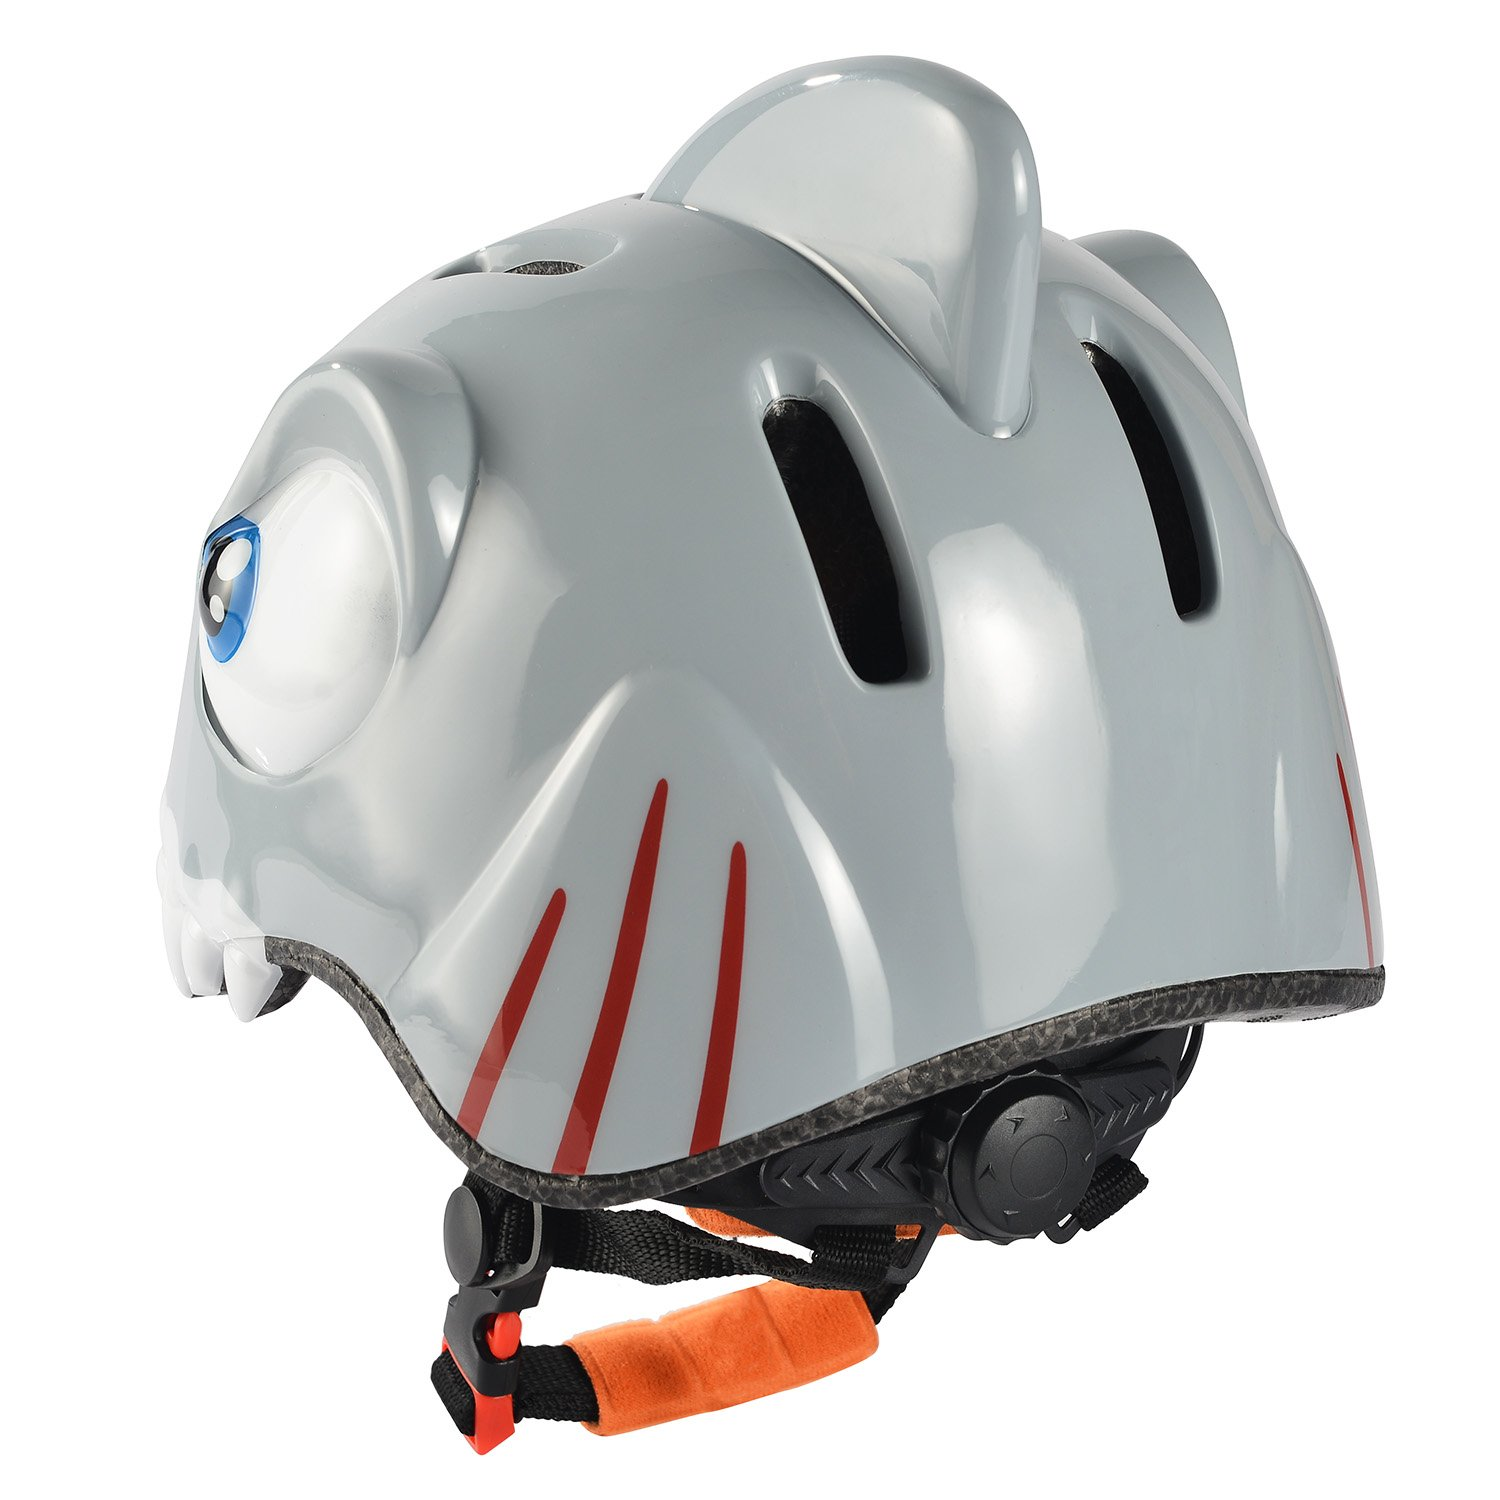 Amazon.com: Chaokele Kids Cute Shark Shape Design Safe Bike Helmet Grey&Red: Toys & Games